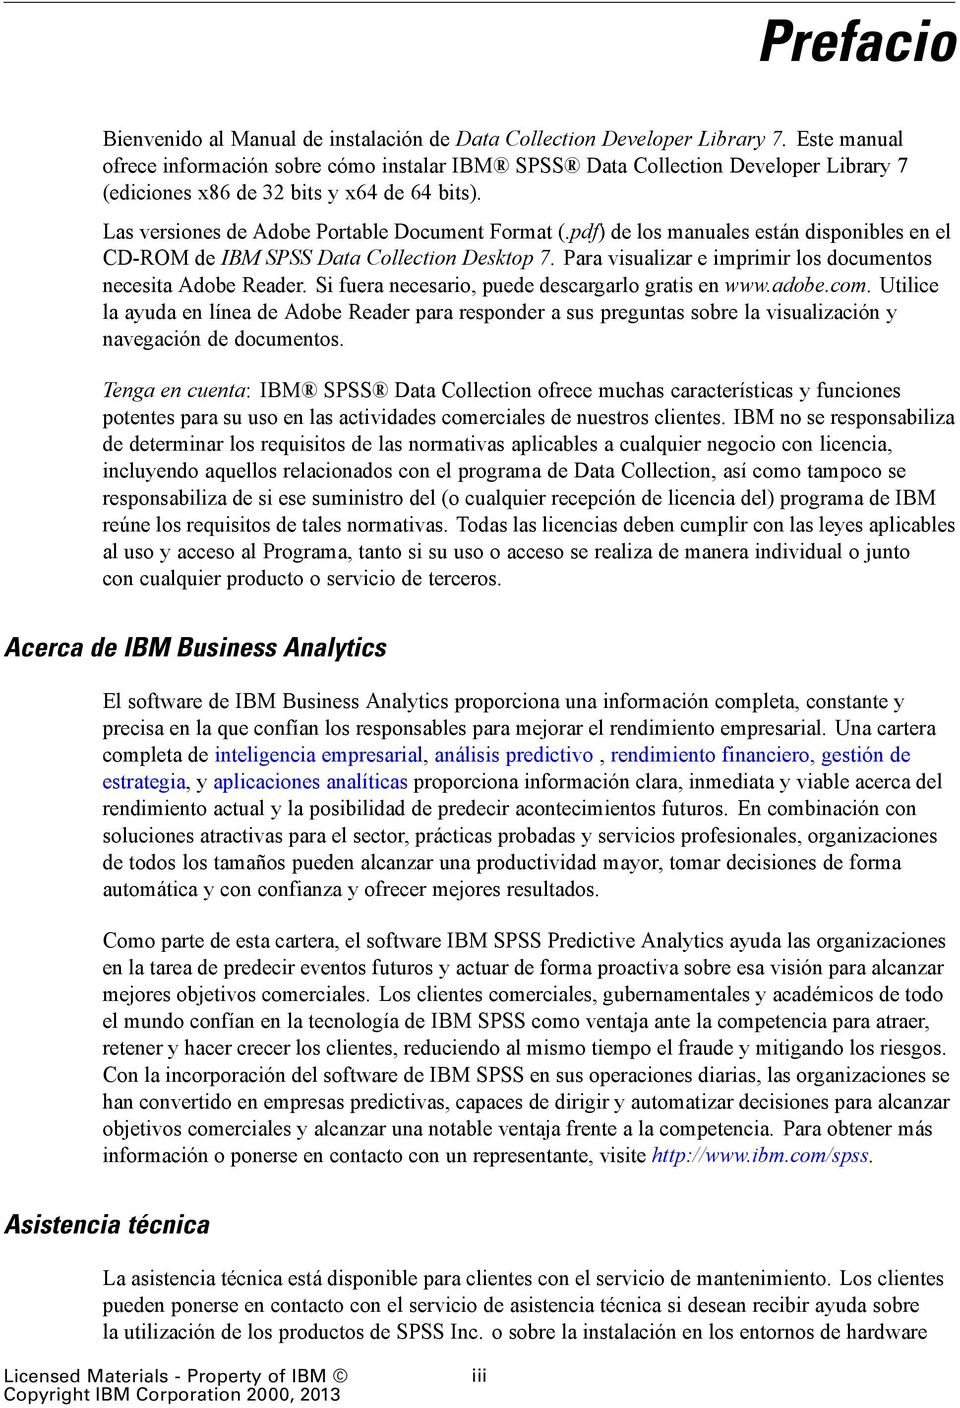 pdf) de los manuales están disponibles en el CD-ROM de IBM SPSS Data Collection Desktop 7. Para visualizar e imprimir los documentos necesita Adobe Reader.